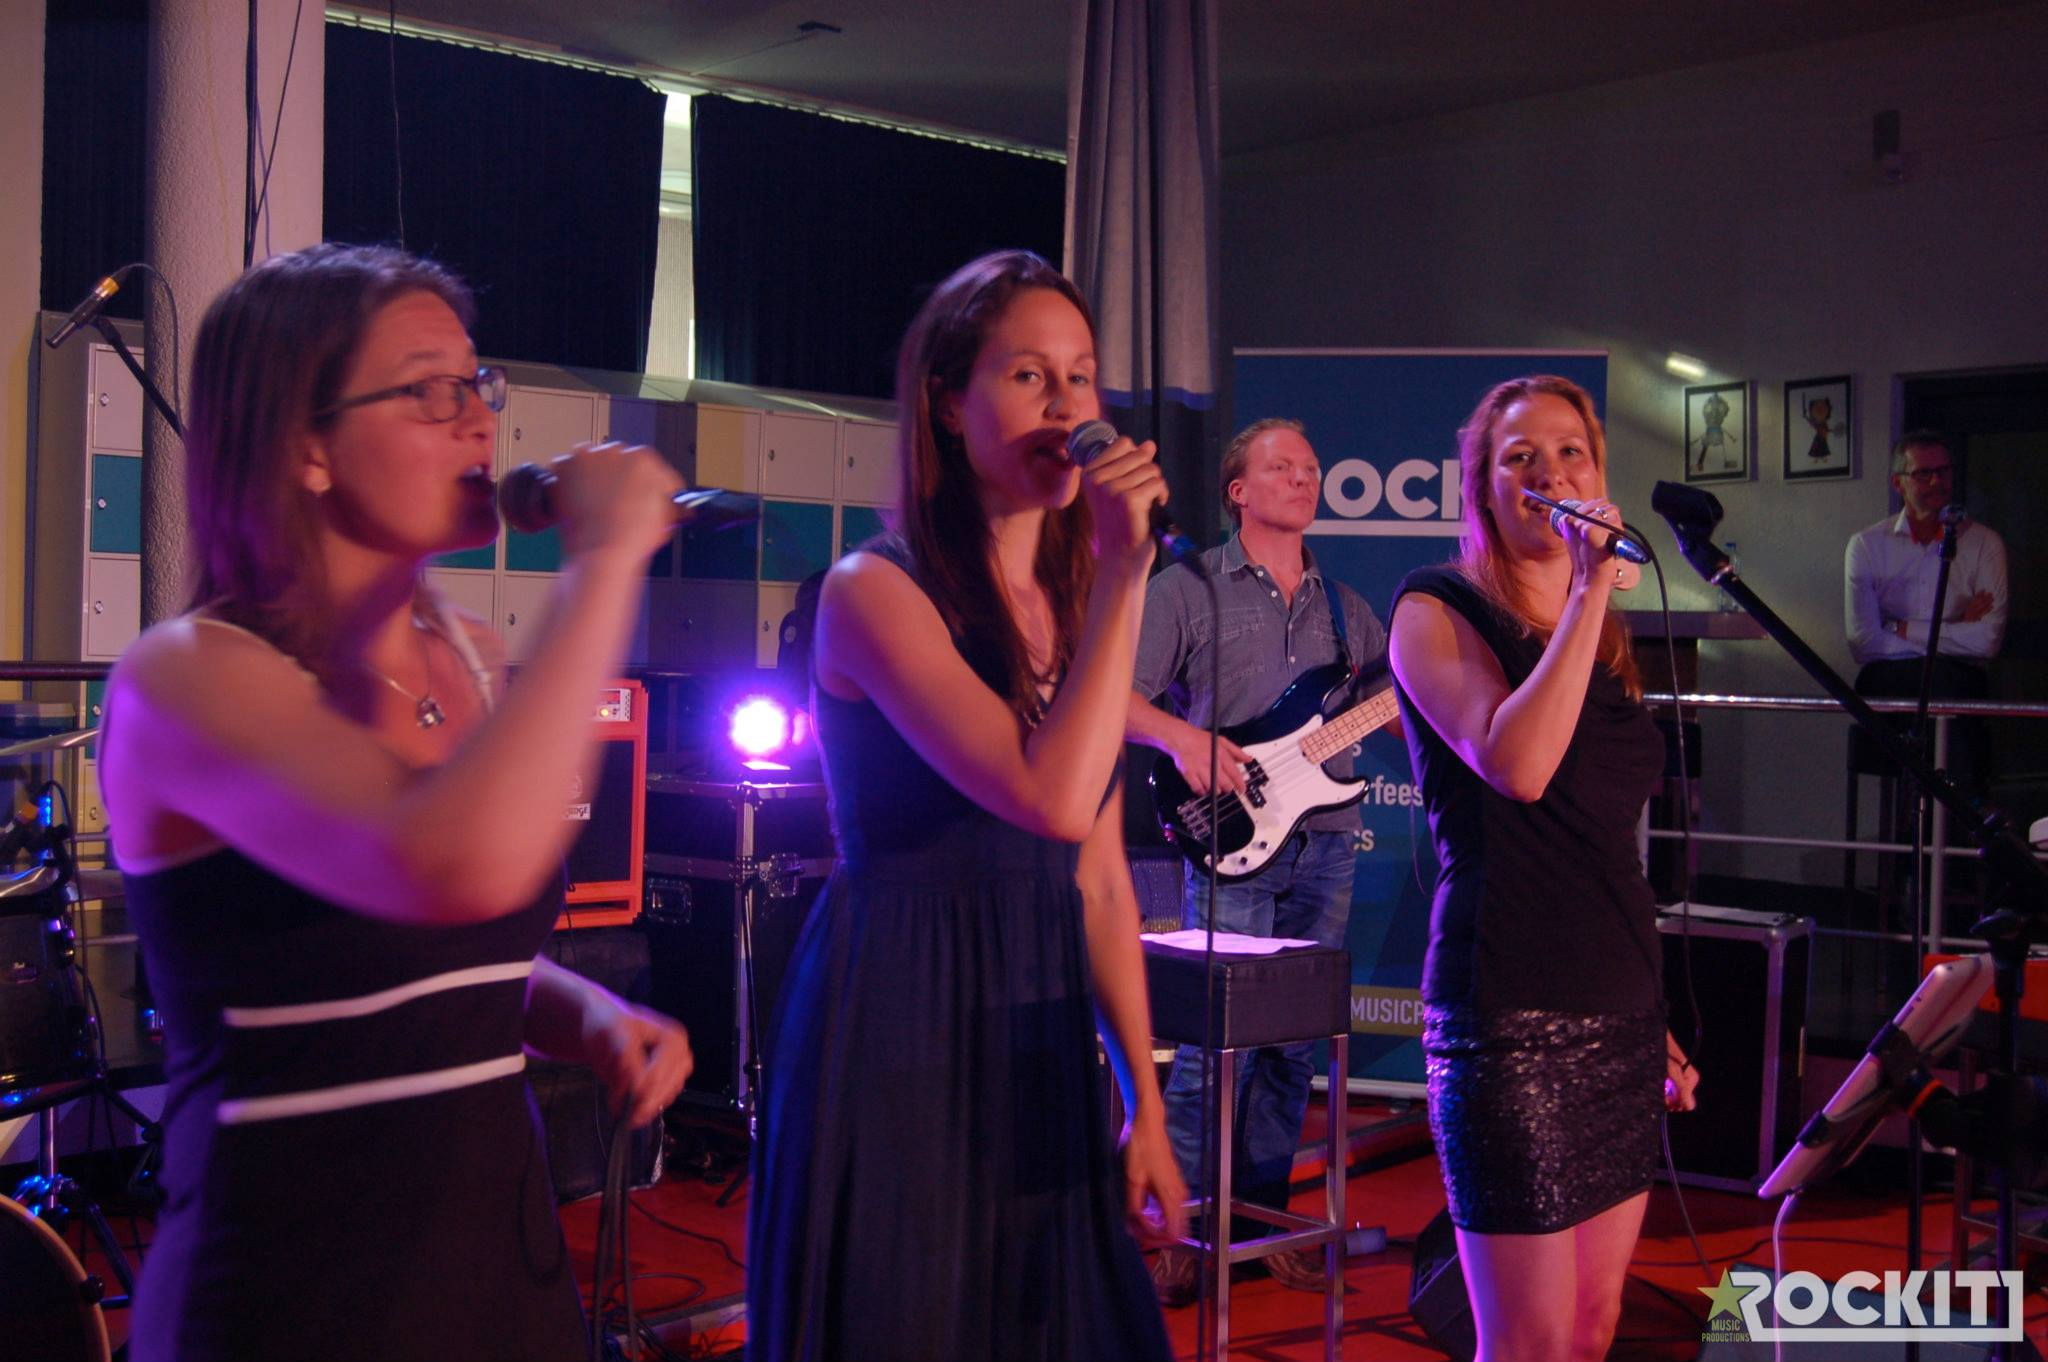 Vocal-group workshop ROCKIT